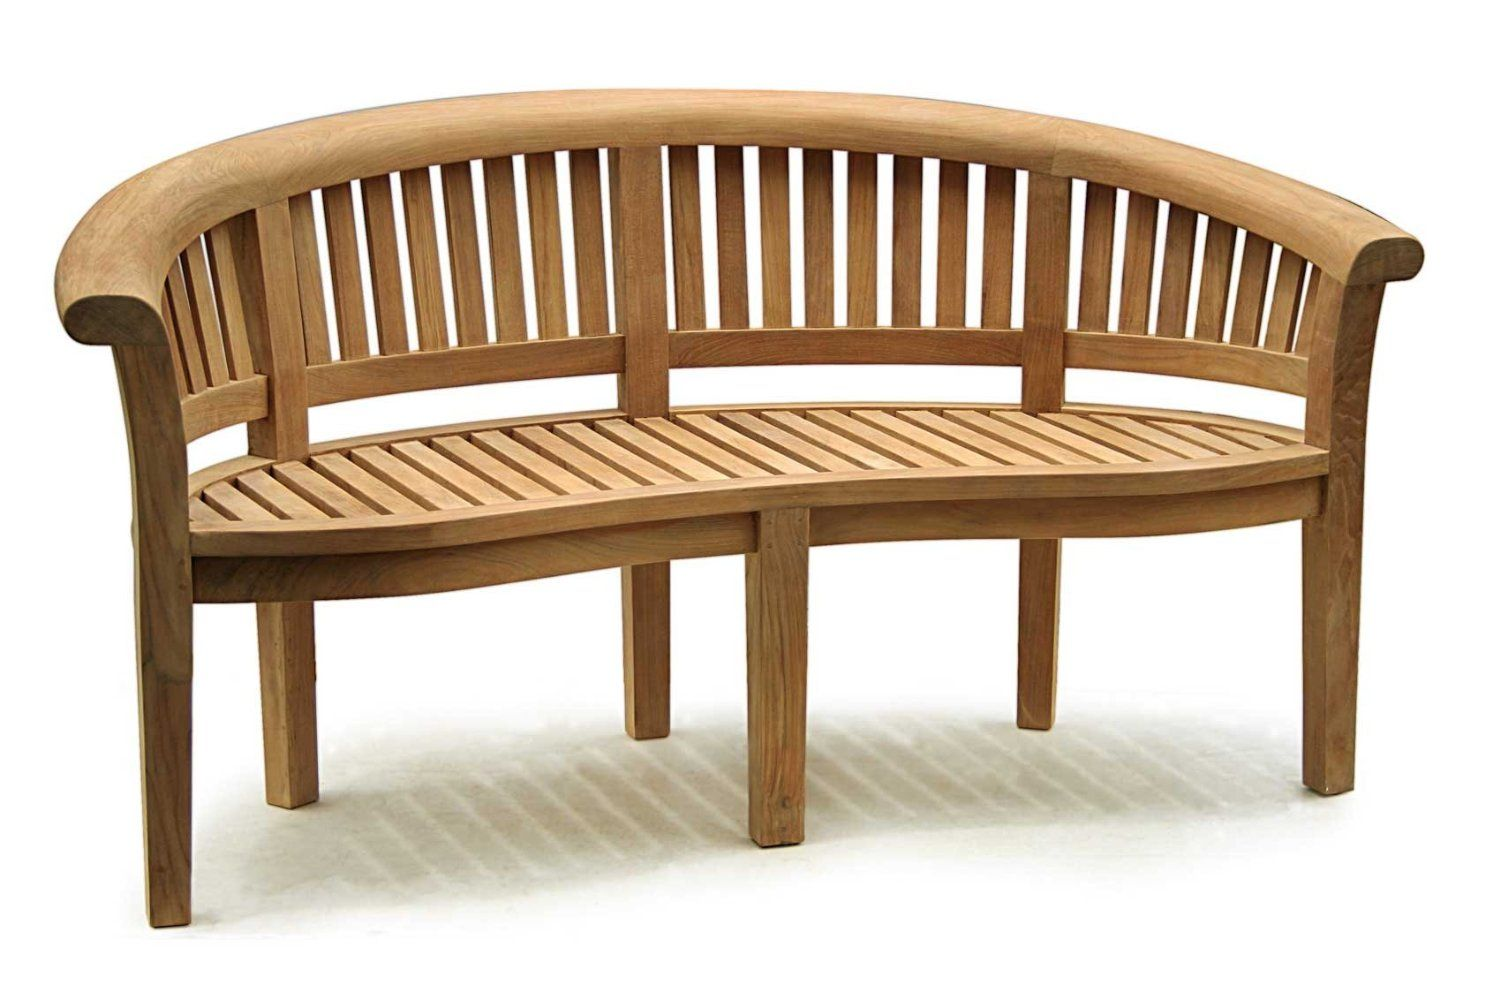 Curved Wooden Garden Bench Google Search Outdoor